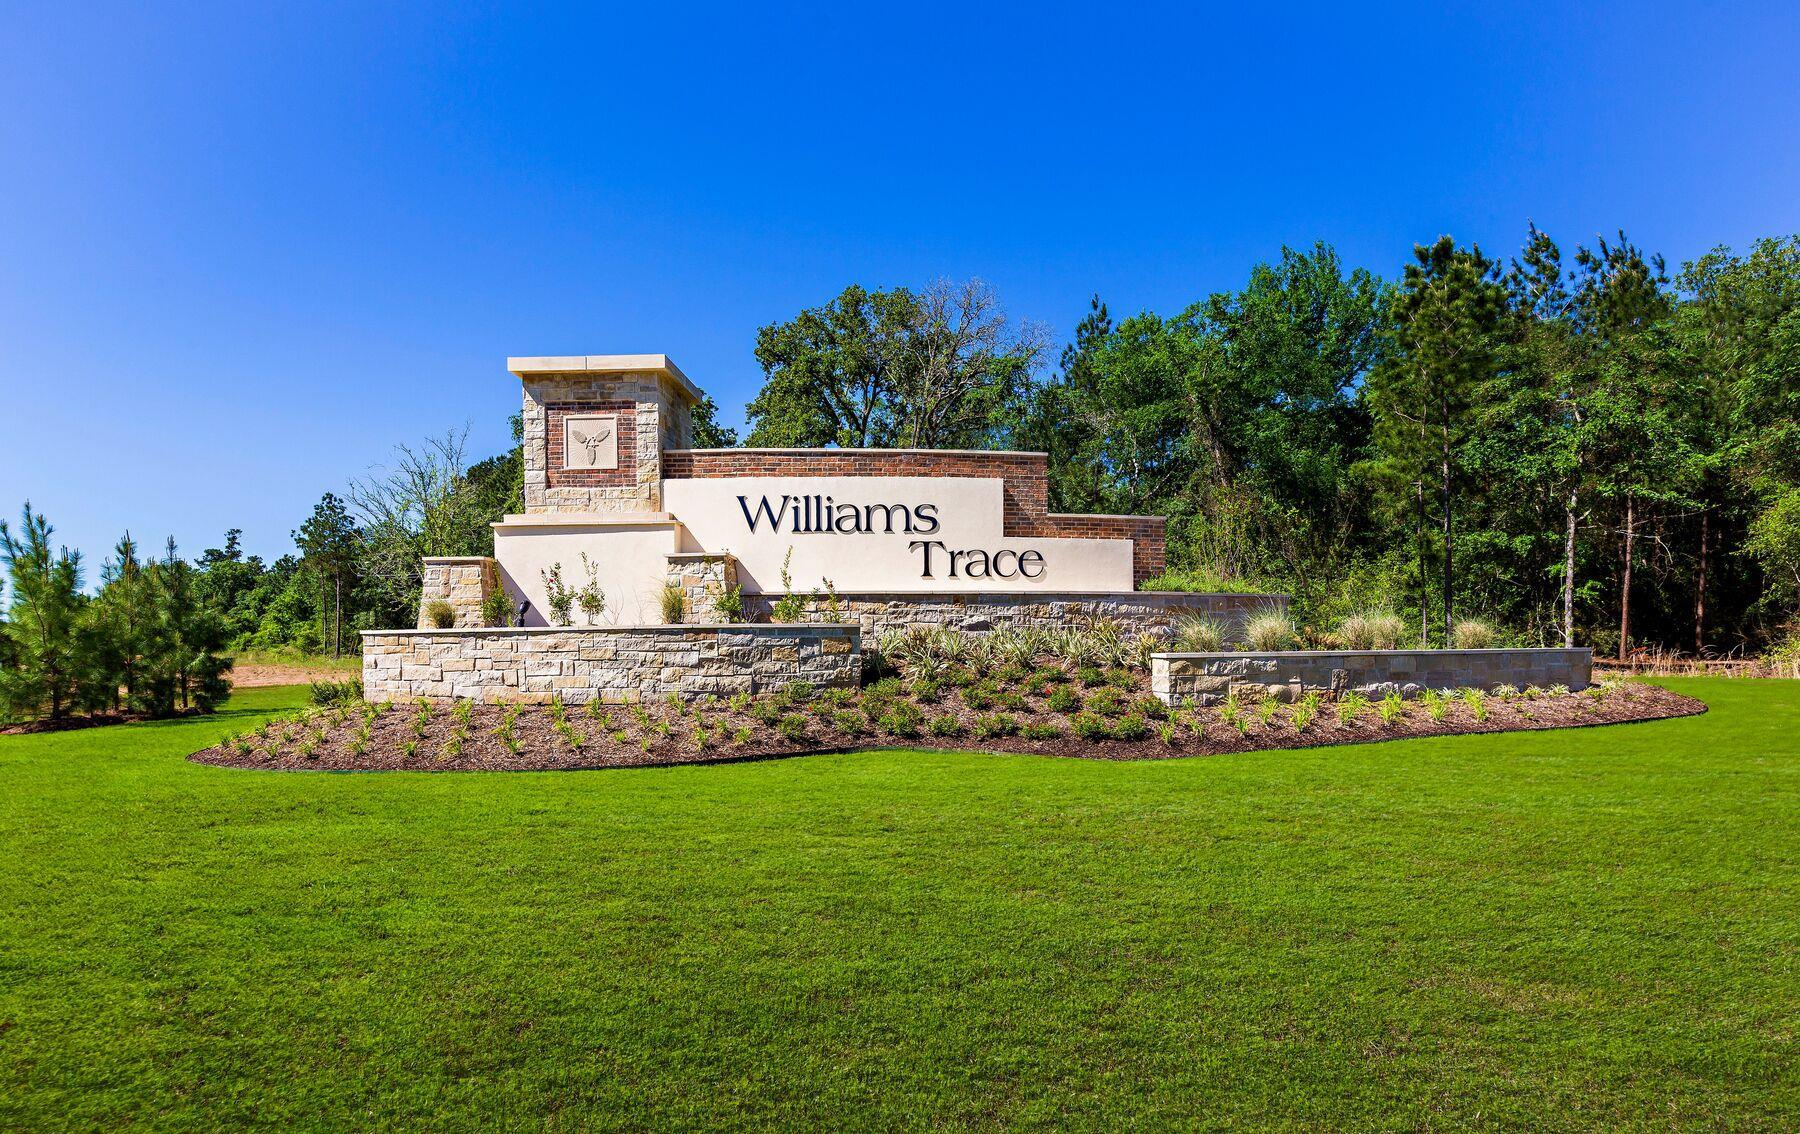 LGI Homes at Williams Trace:Williams Trace is located minutes from world-class shopping, dining and entertainment!